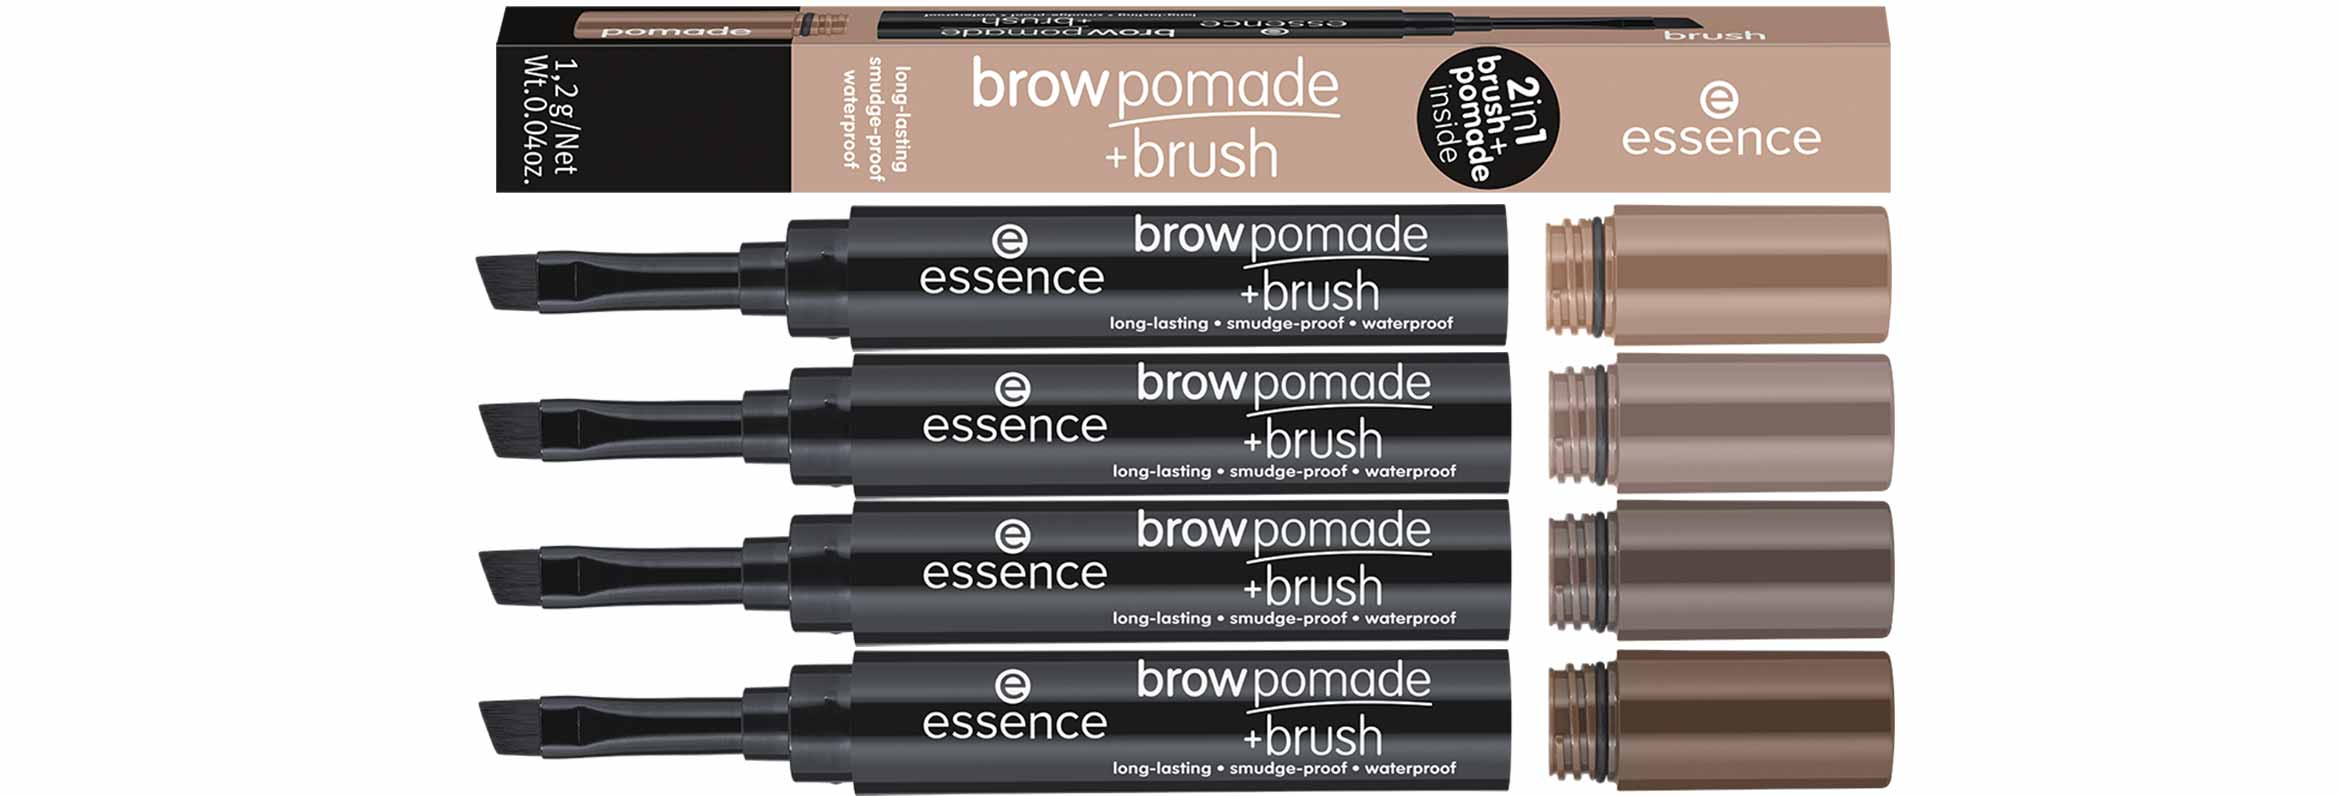 essence brow pomade brush